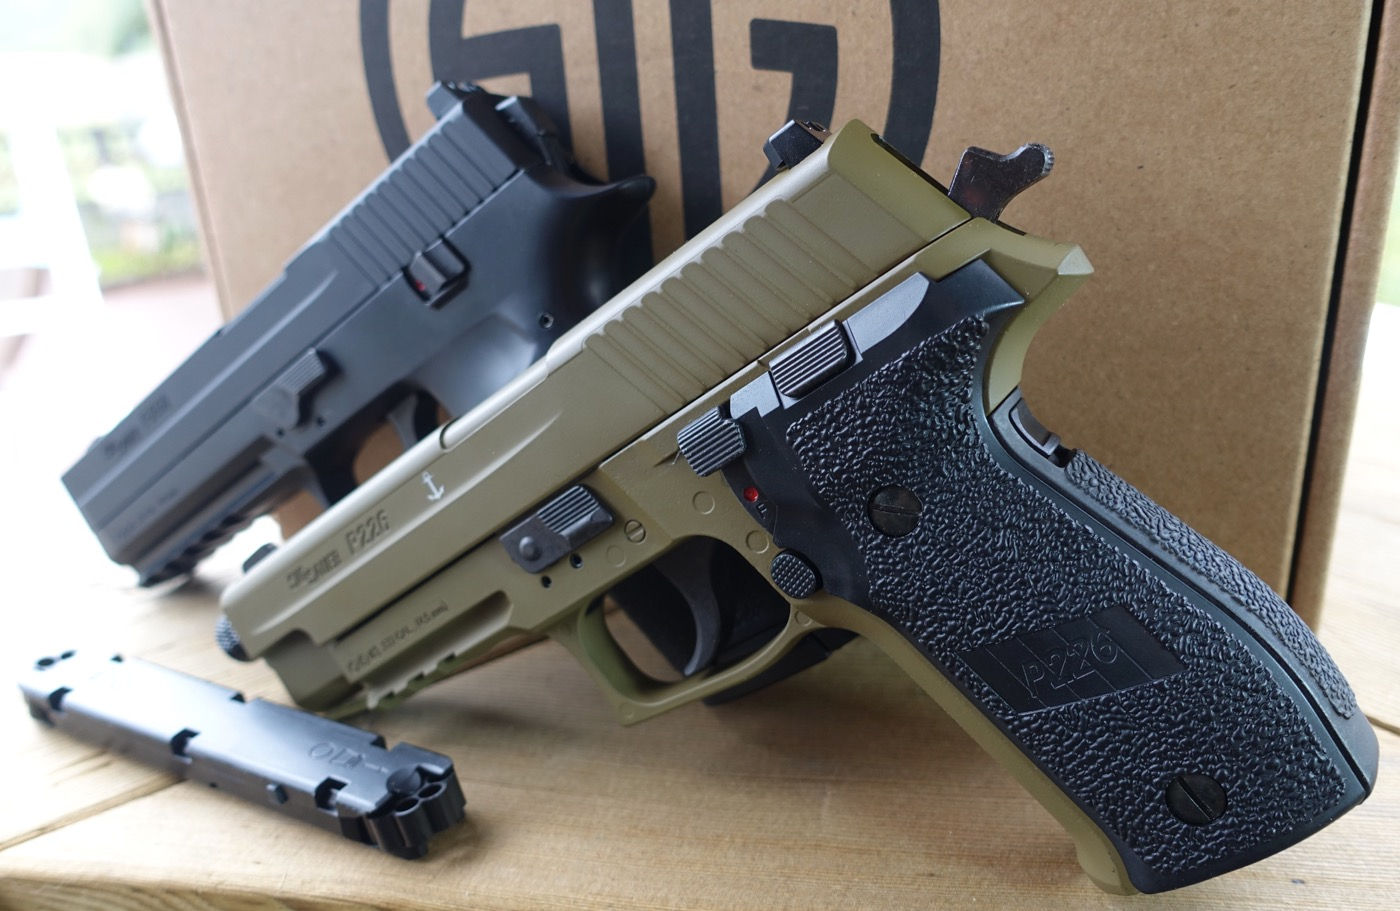 Sig Sauer ASP P226 and P250 Left Side 266 Mag Rear.jpg